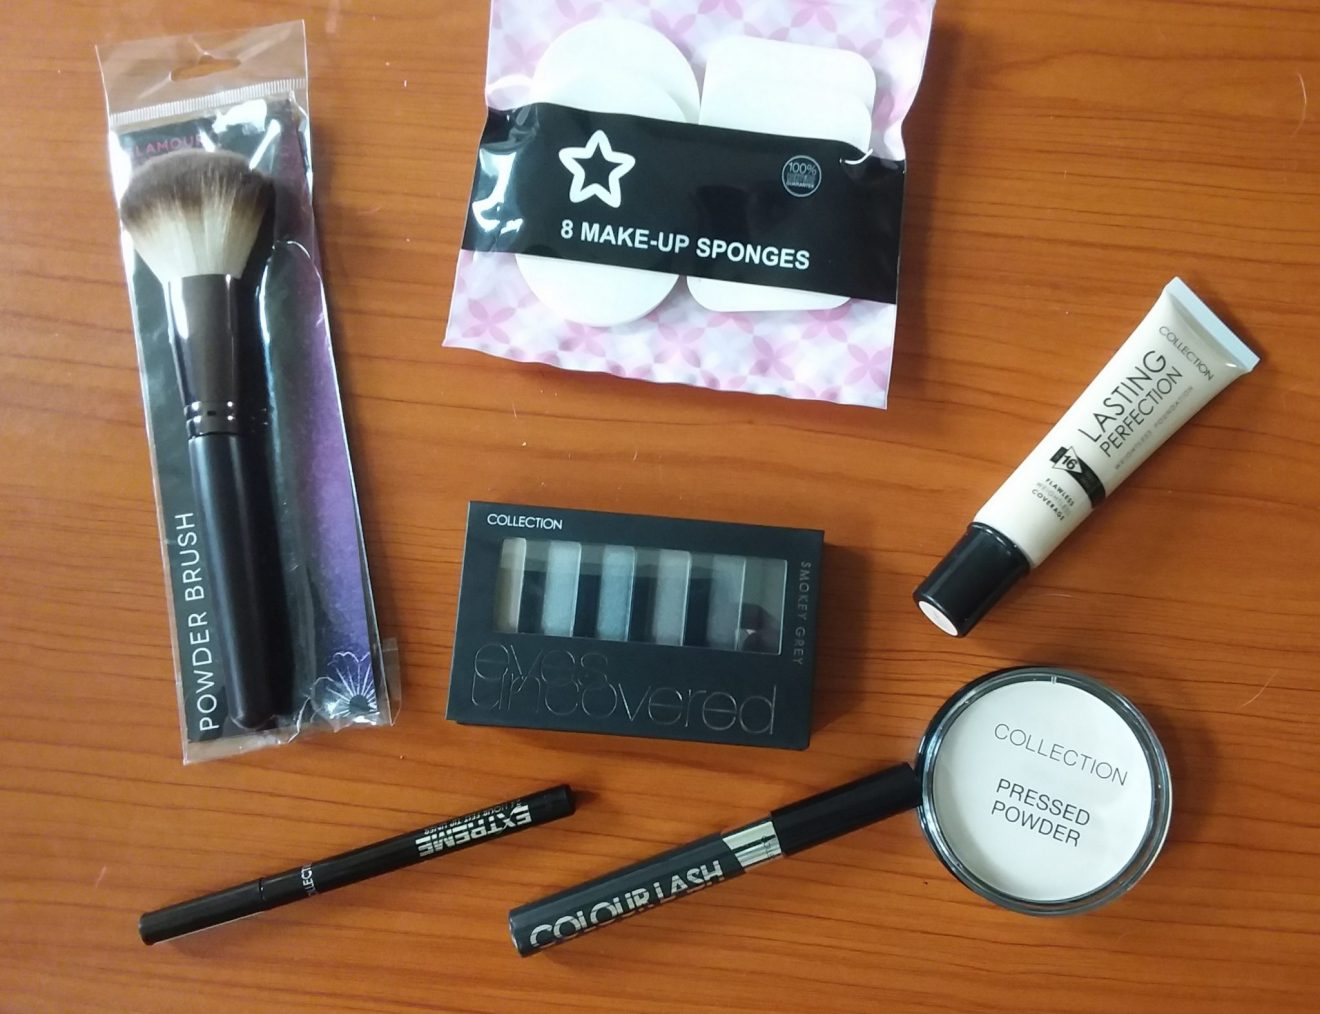 Makeup products image